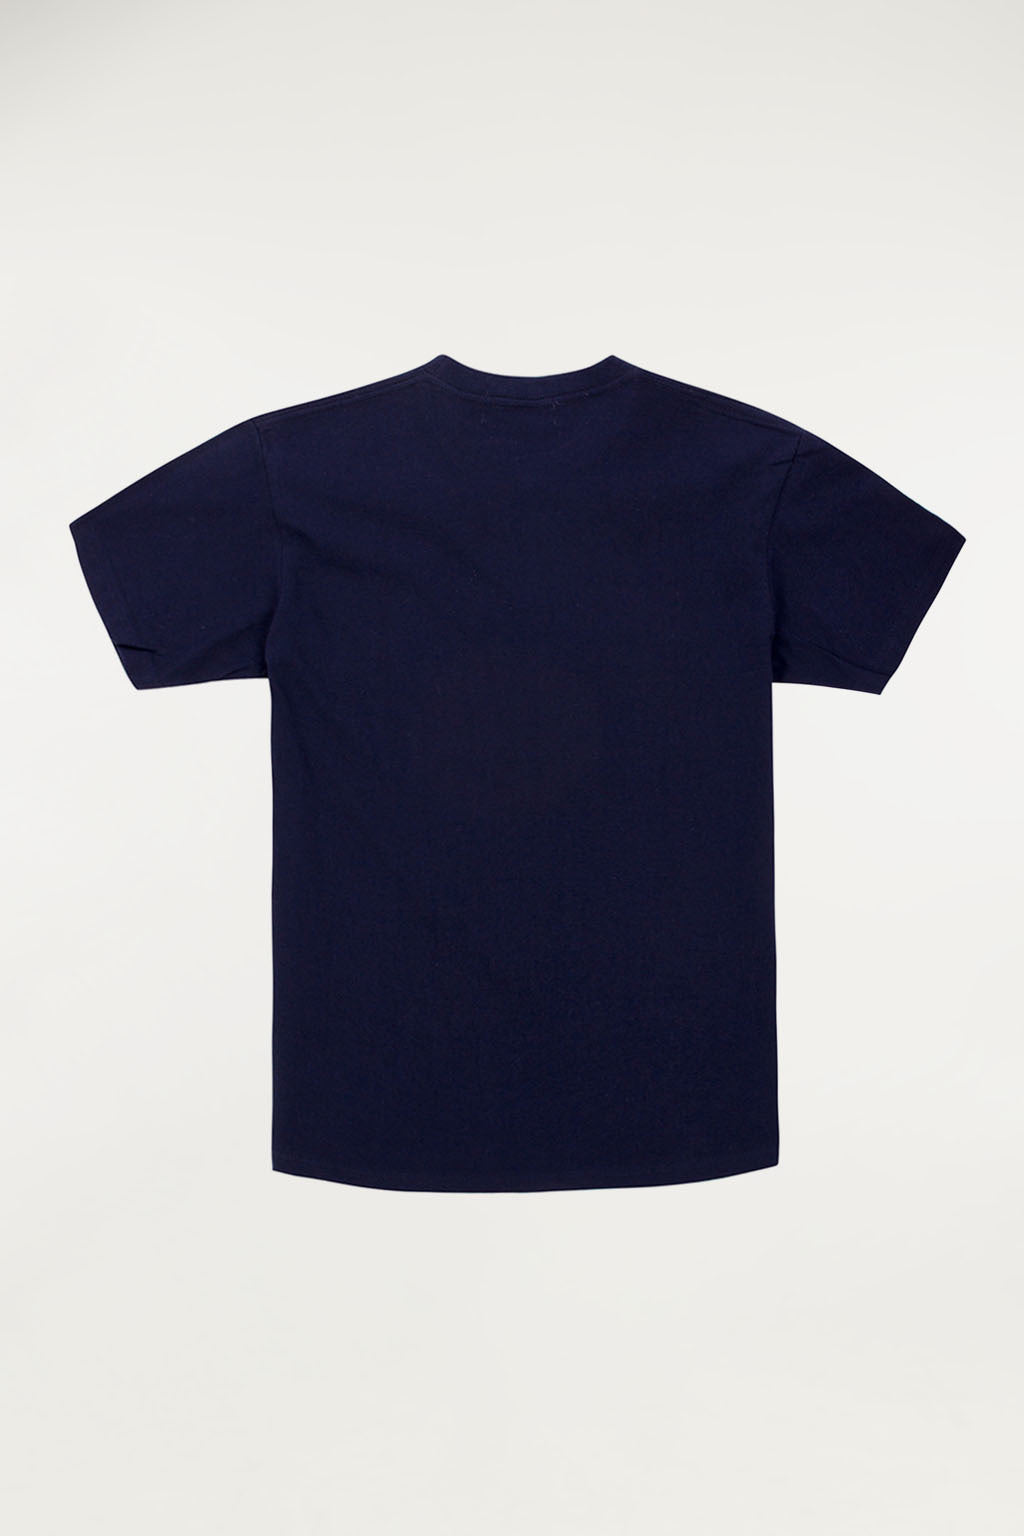 Navy blue iconic tee